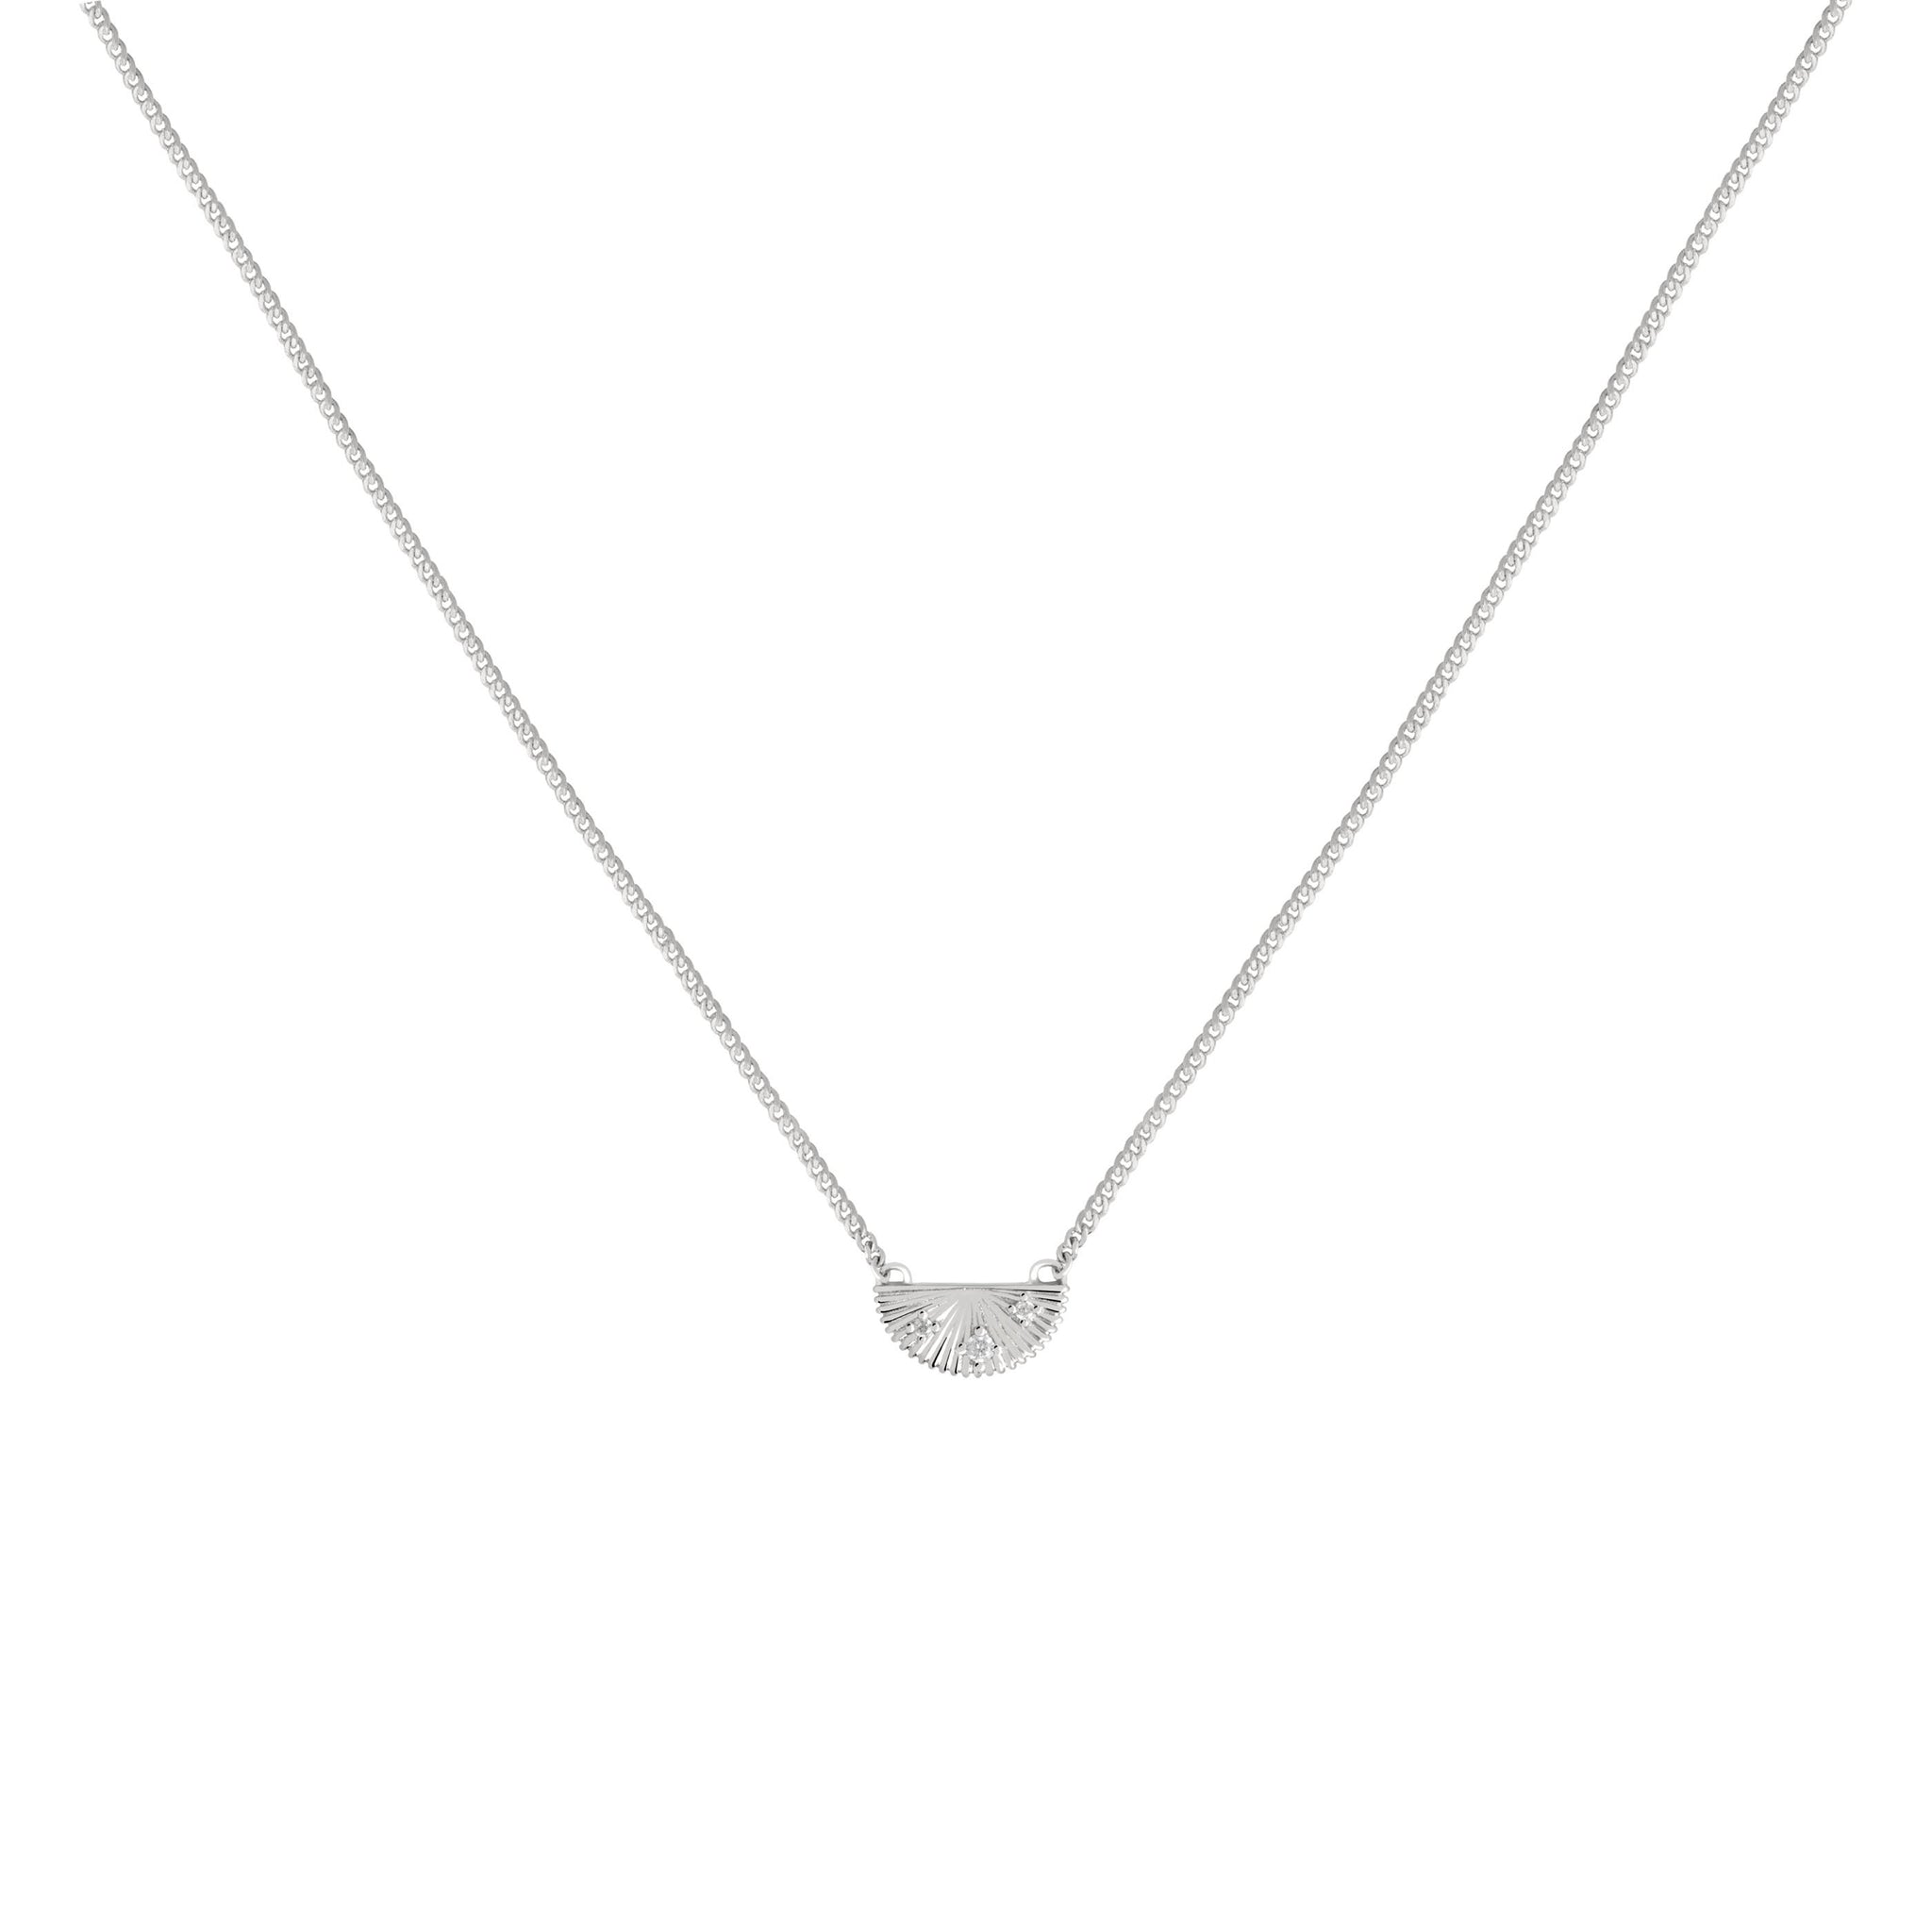 Sunbeam Pendant Necklace in Silver